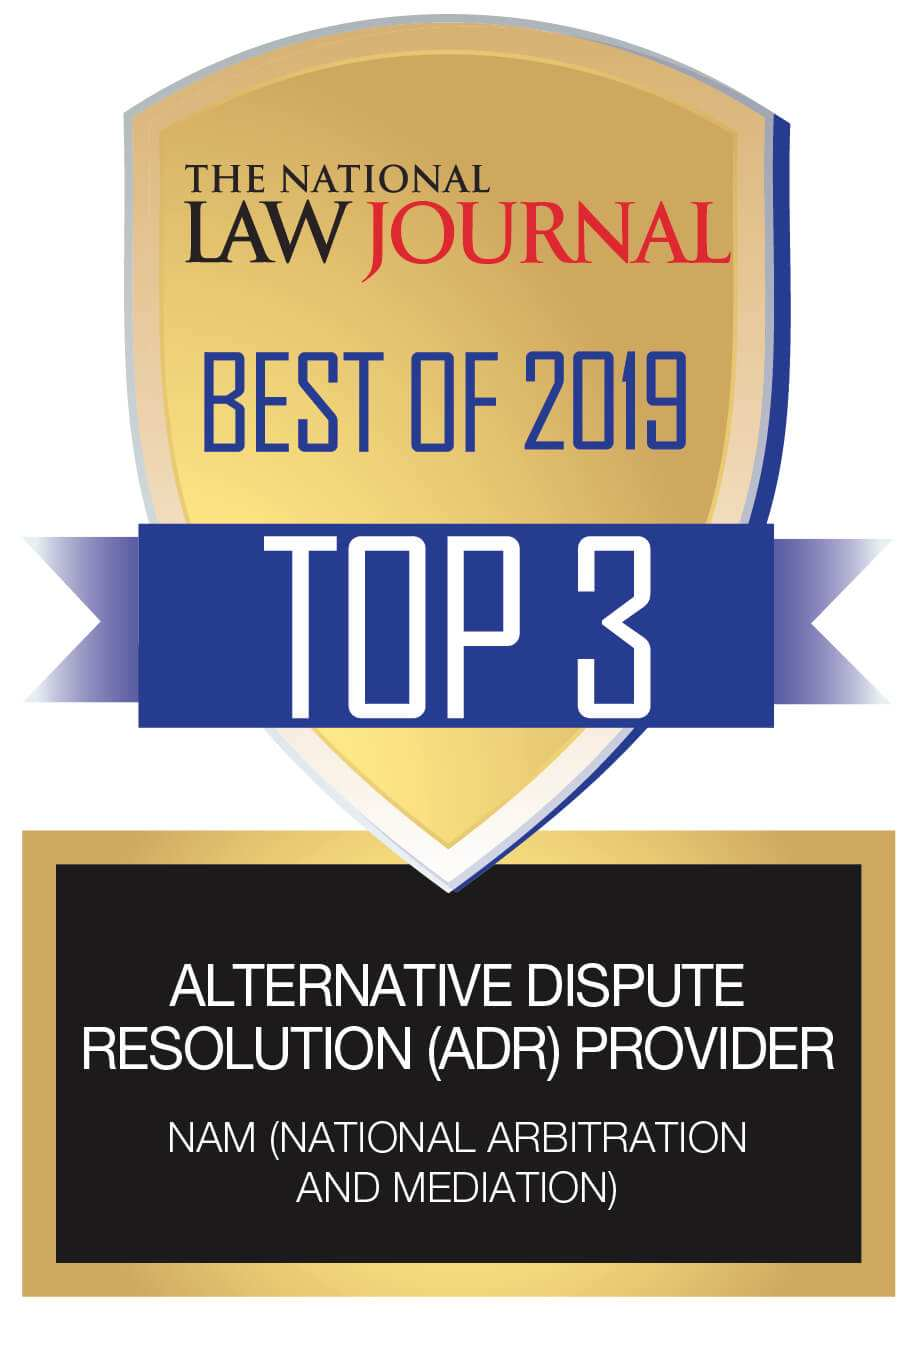 NAM (National Arbitration and Mediation) Top 3 Alternative Dispute Resolution (ADR) Provider Badge The National Law Journal